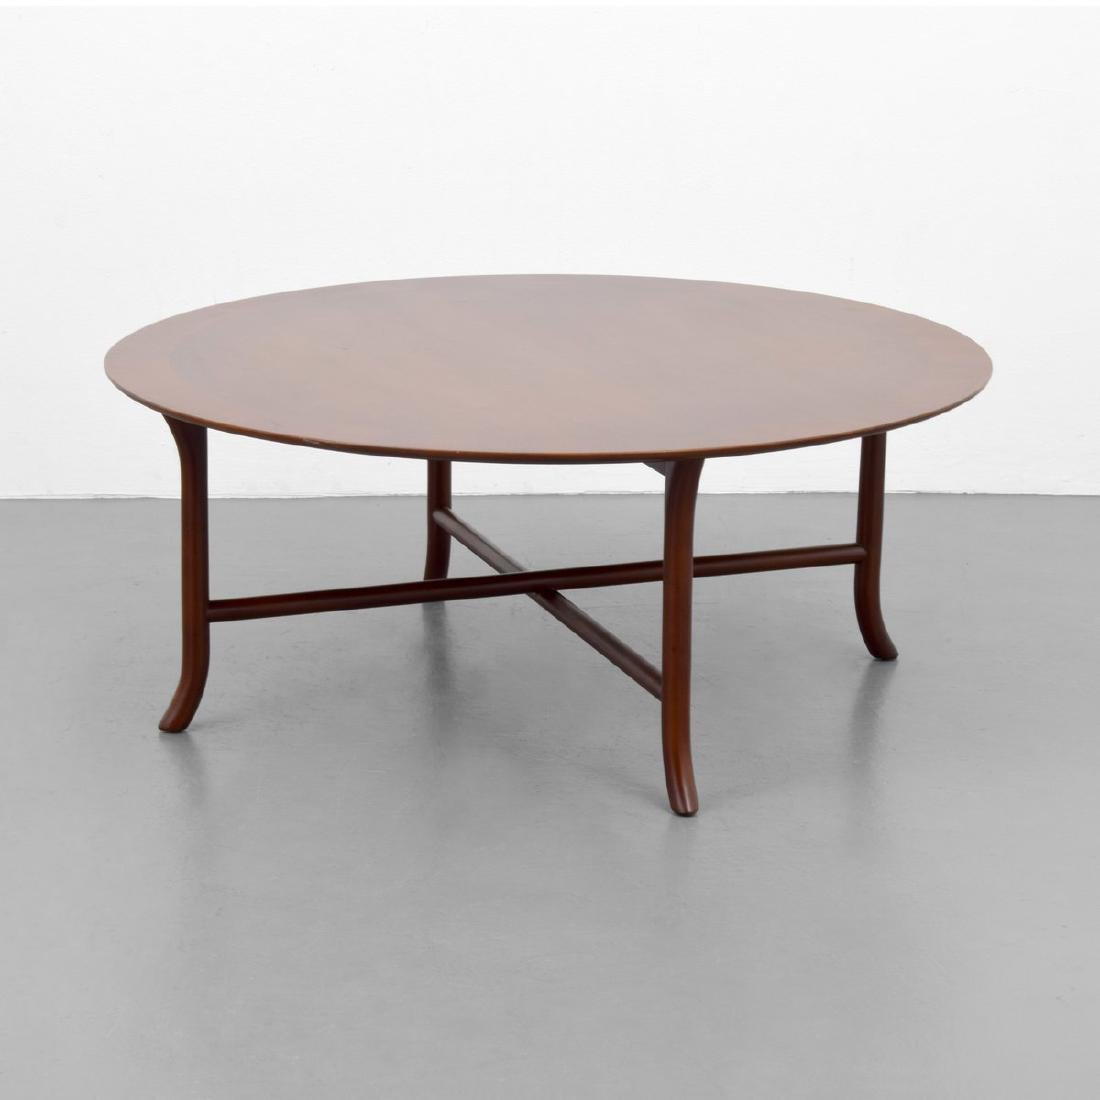 T.H. Robsjohn-Gibbings Splayed Leg Coffee Table